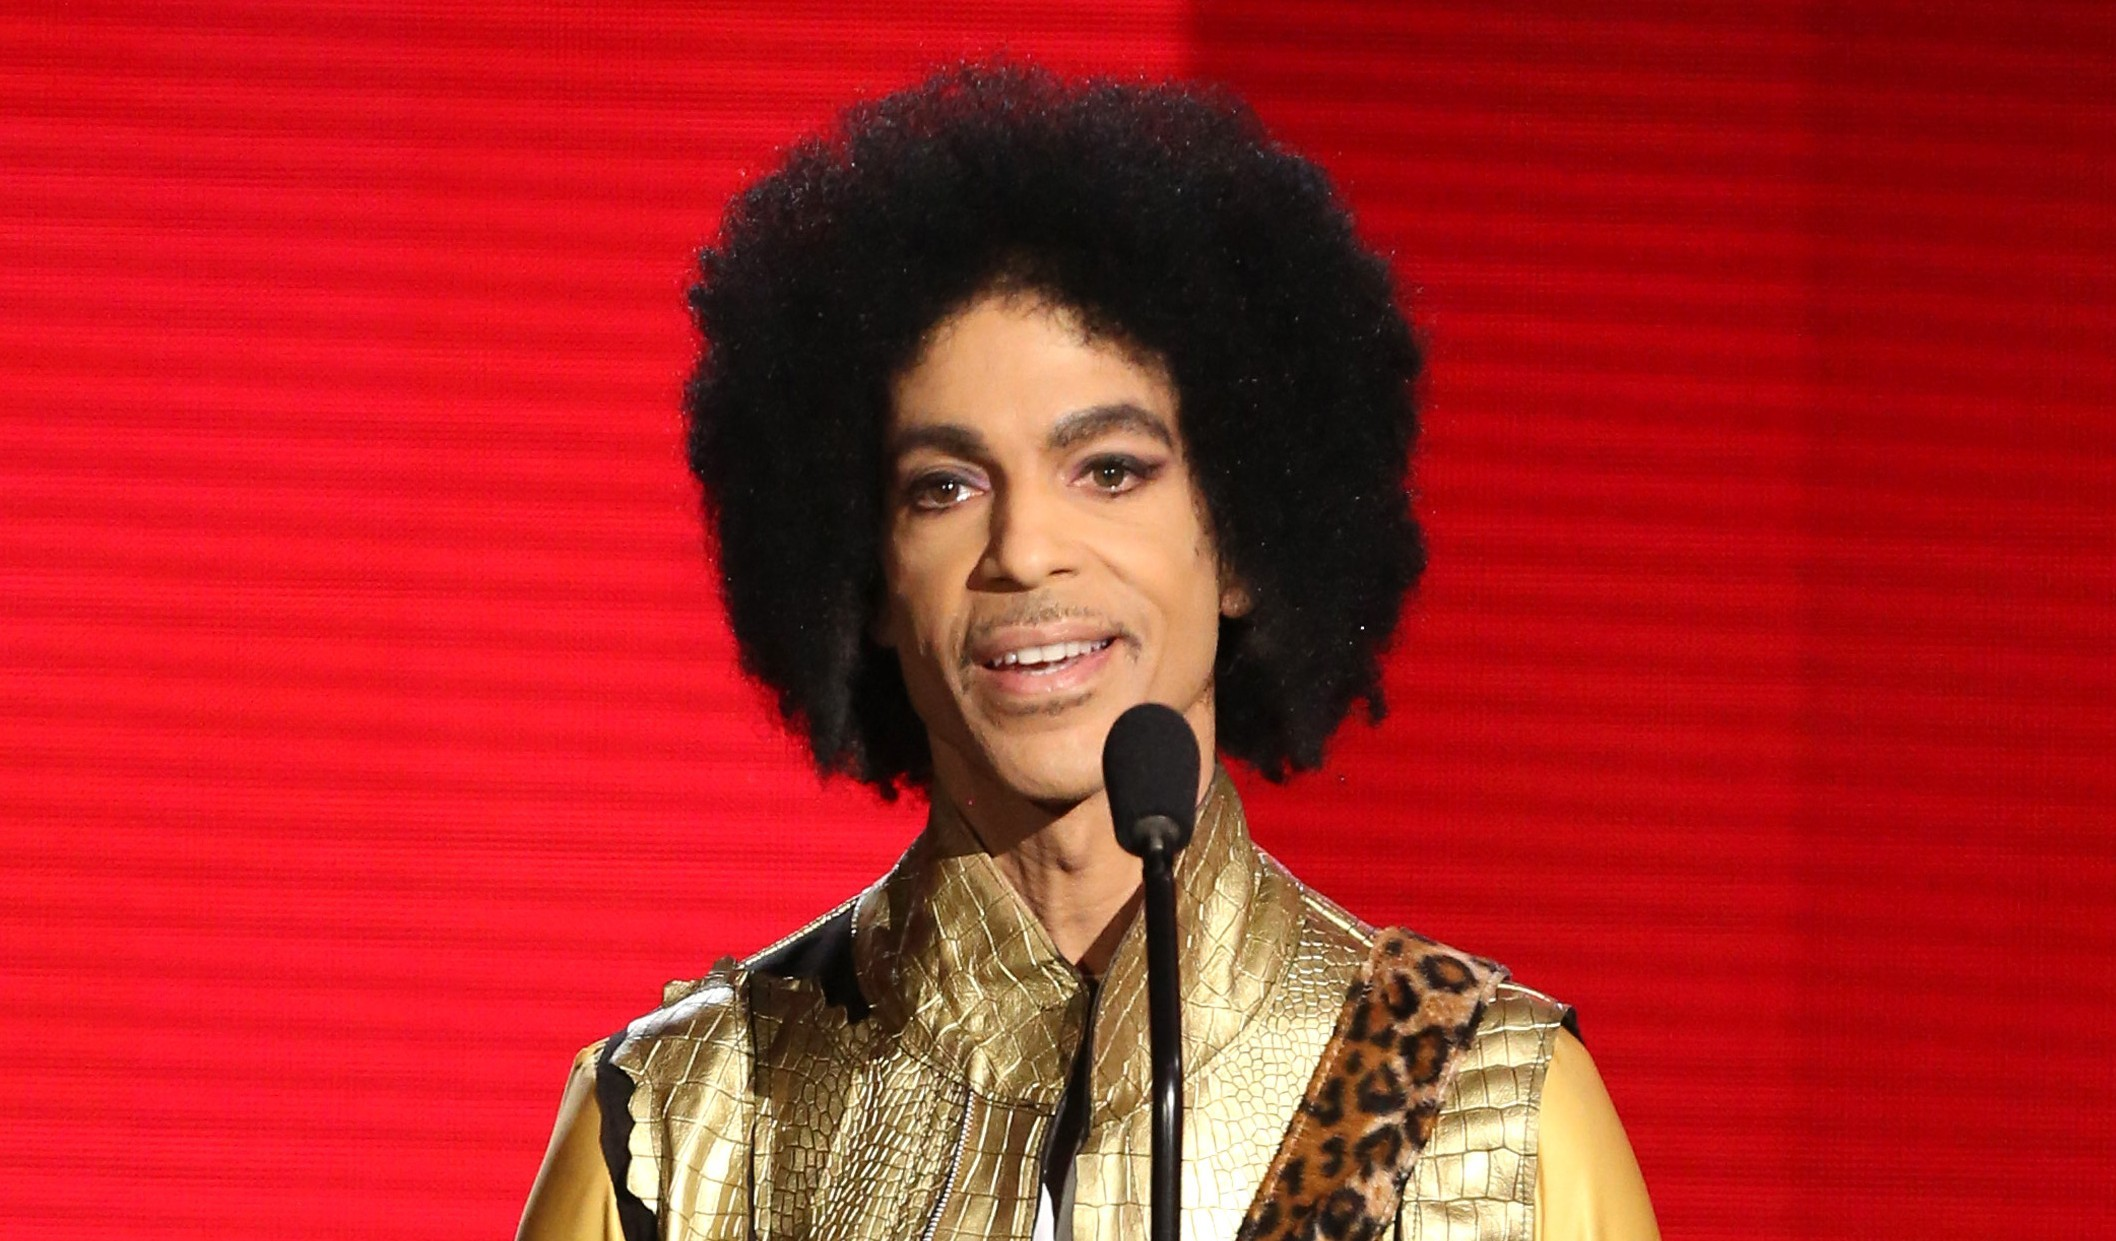 Prince died at his home in the state of Minnesota.